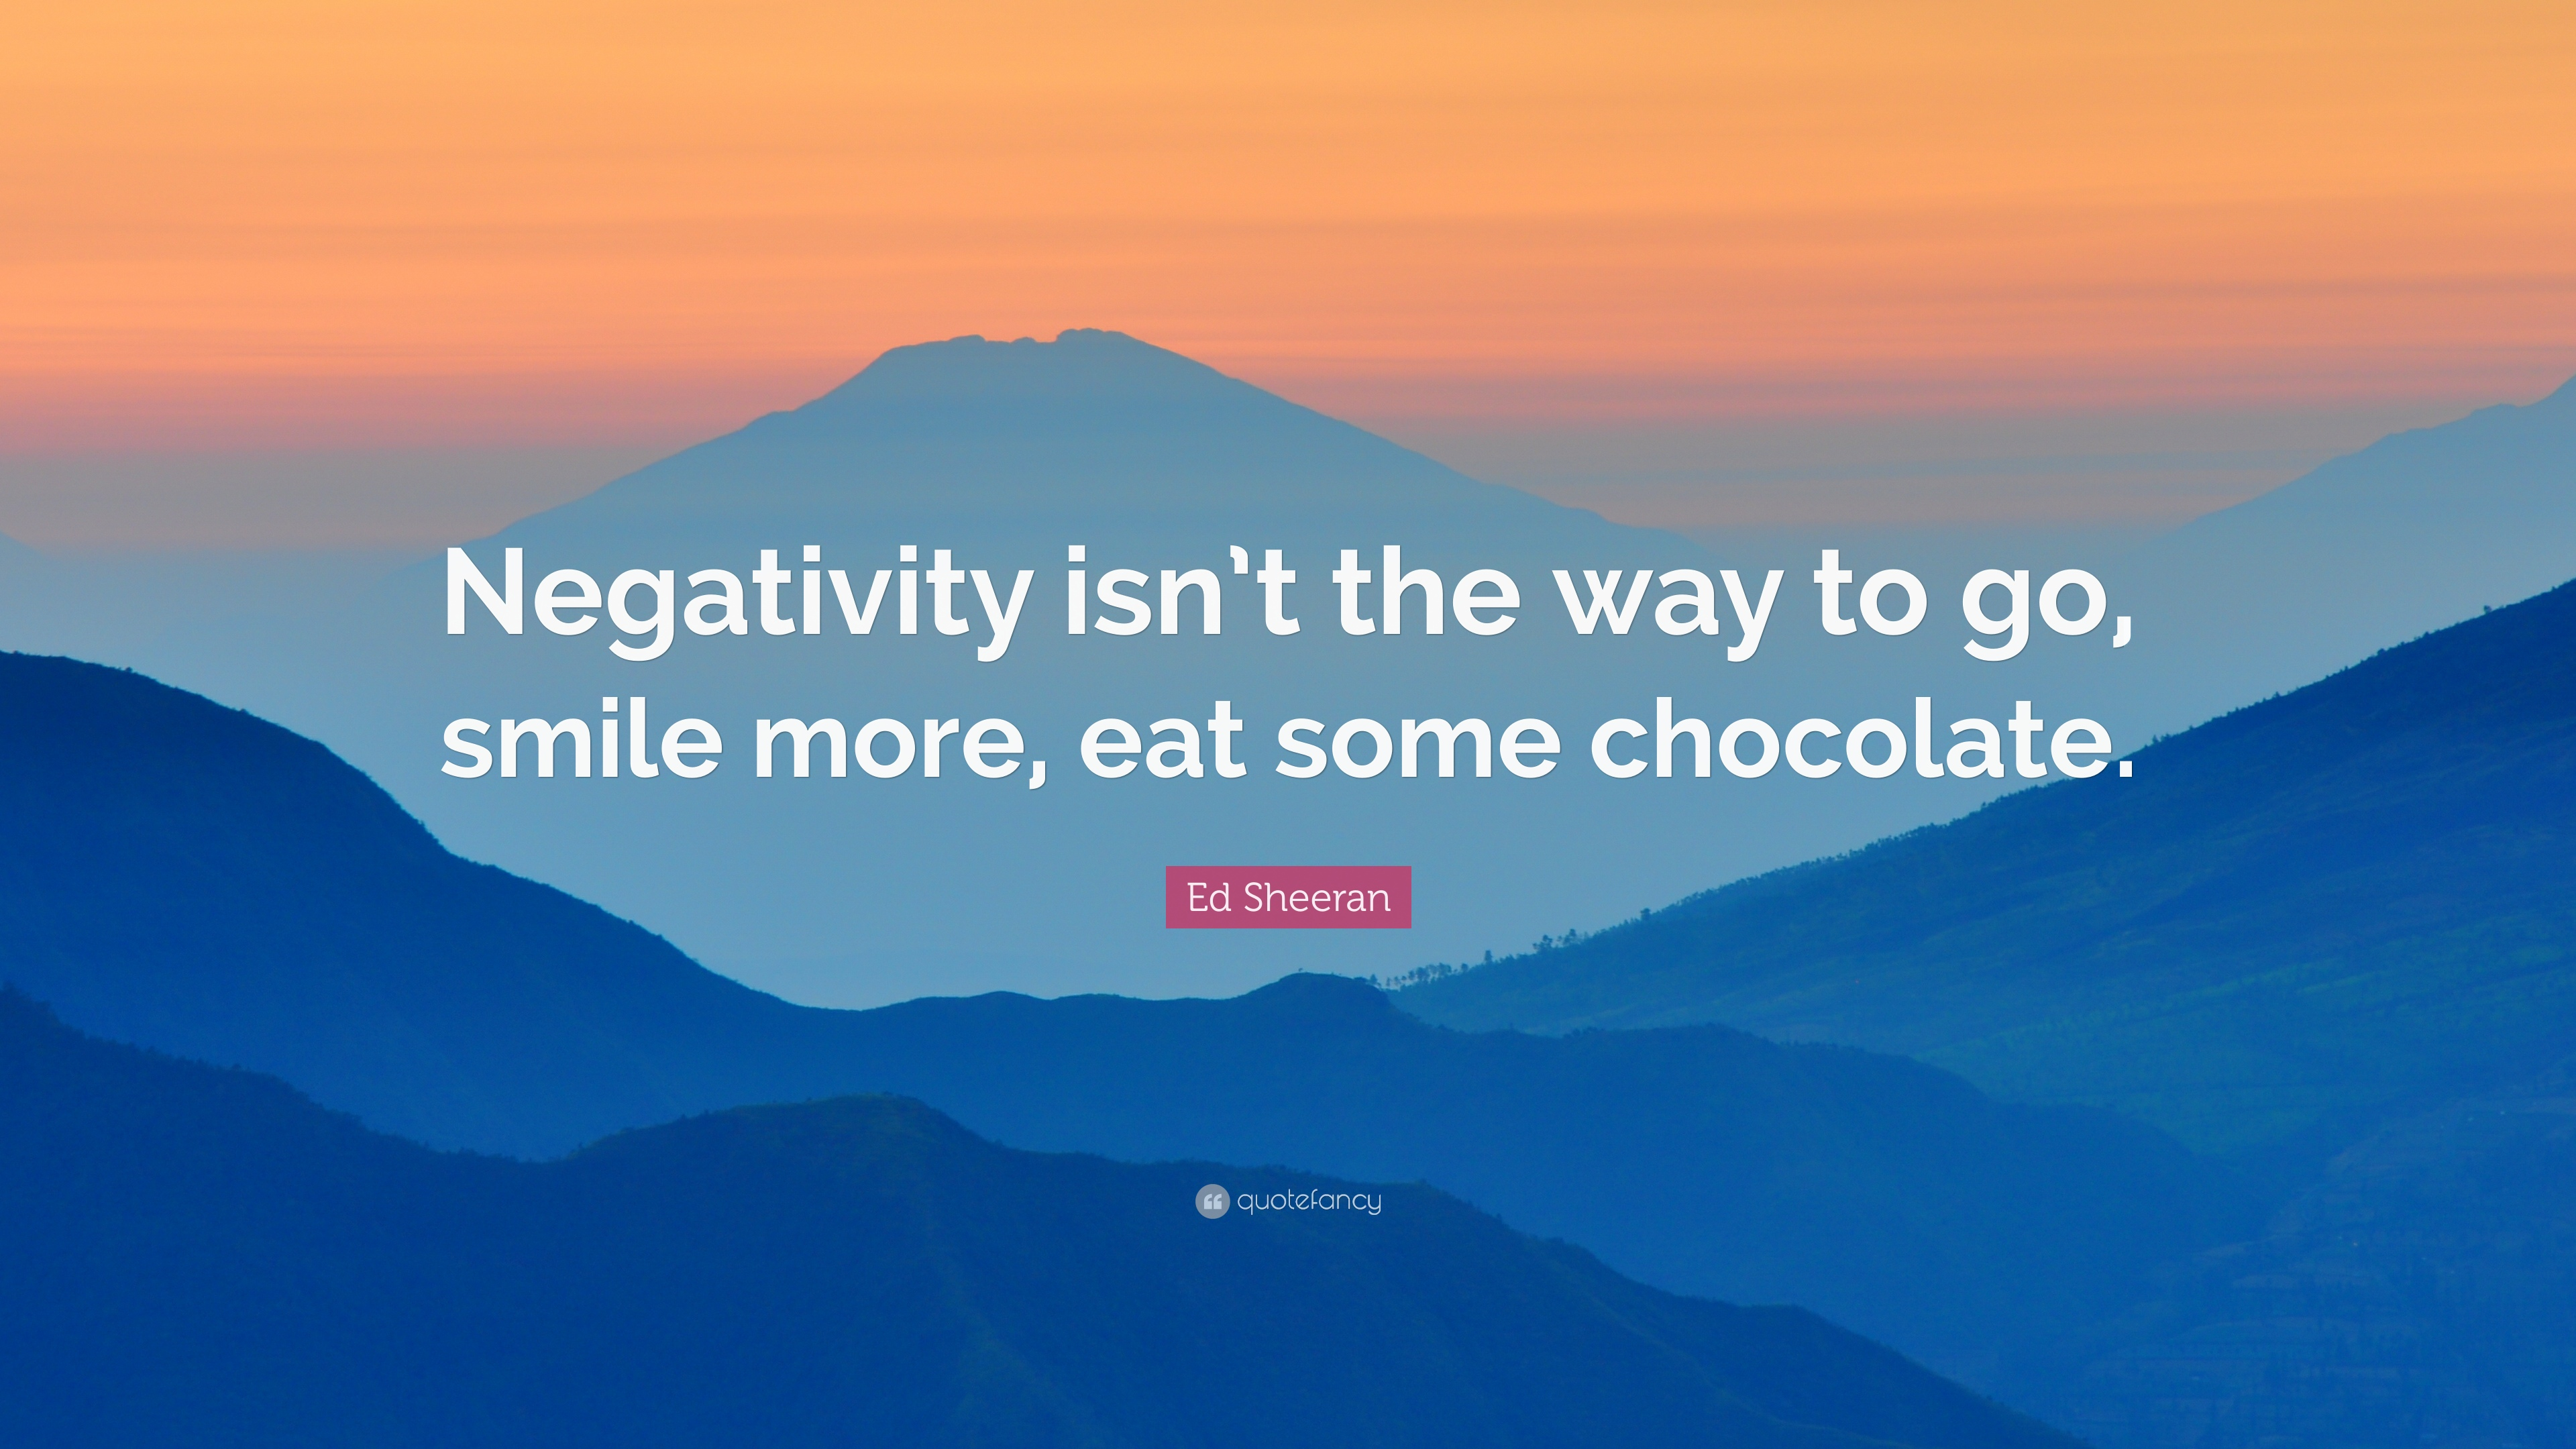 Ed Sheeran Quote Negativity Isnt The Way To Go Smile More